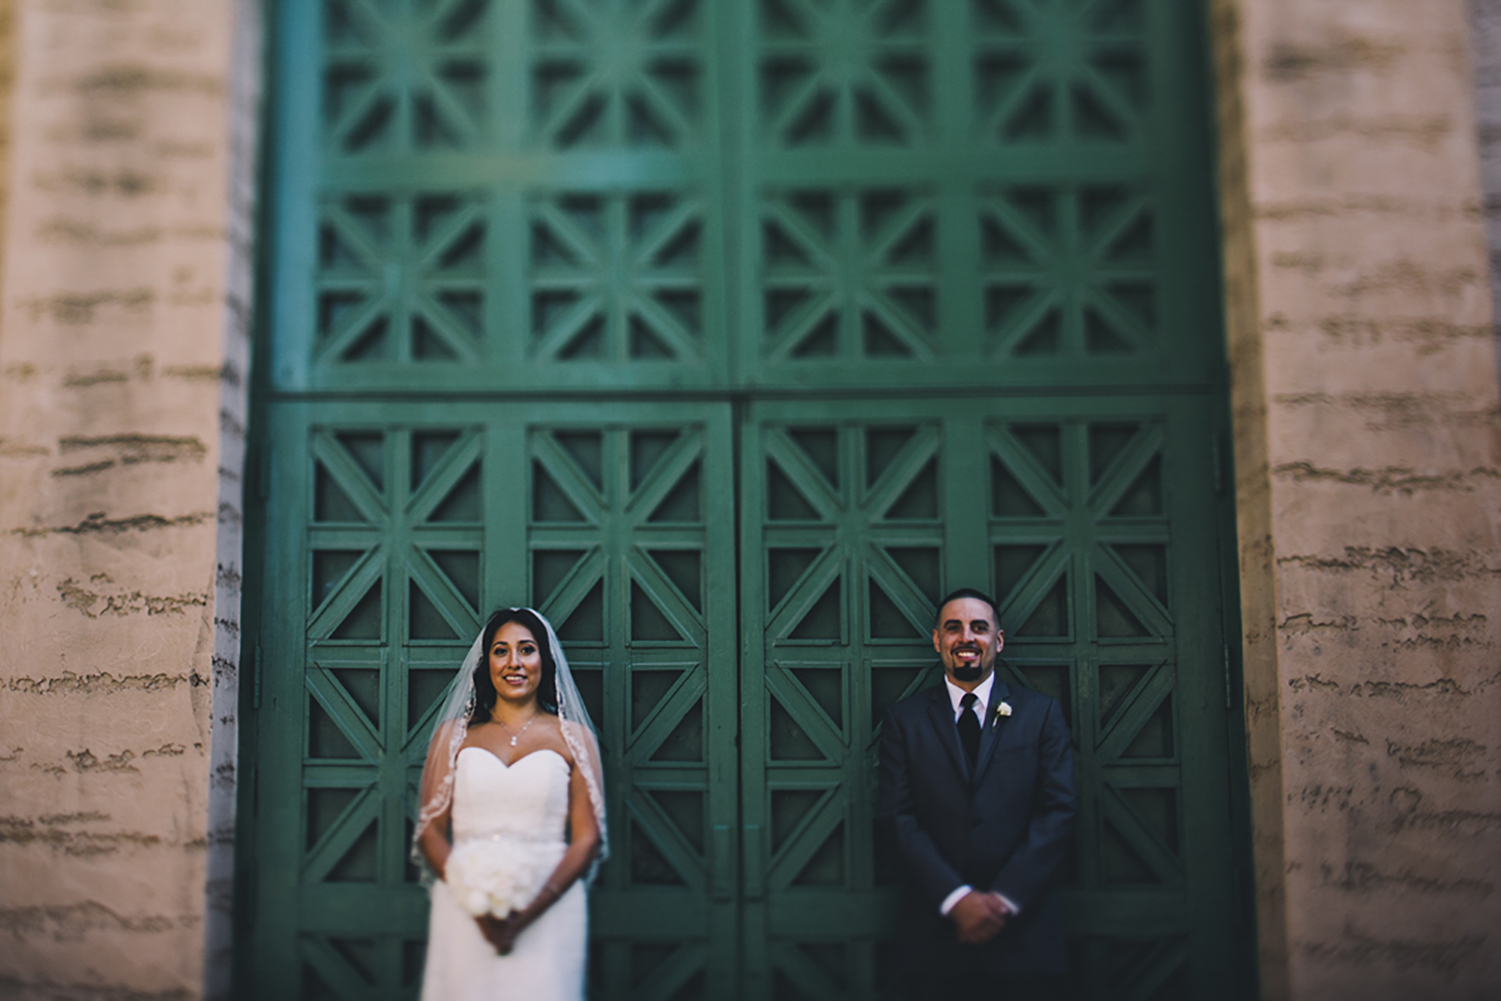 Johanna and Anthony get married in San Francisco on June 7, 2014. ©Dan & Russell Photography 2014